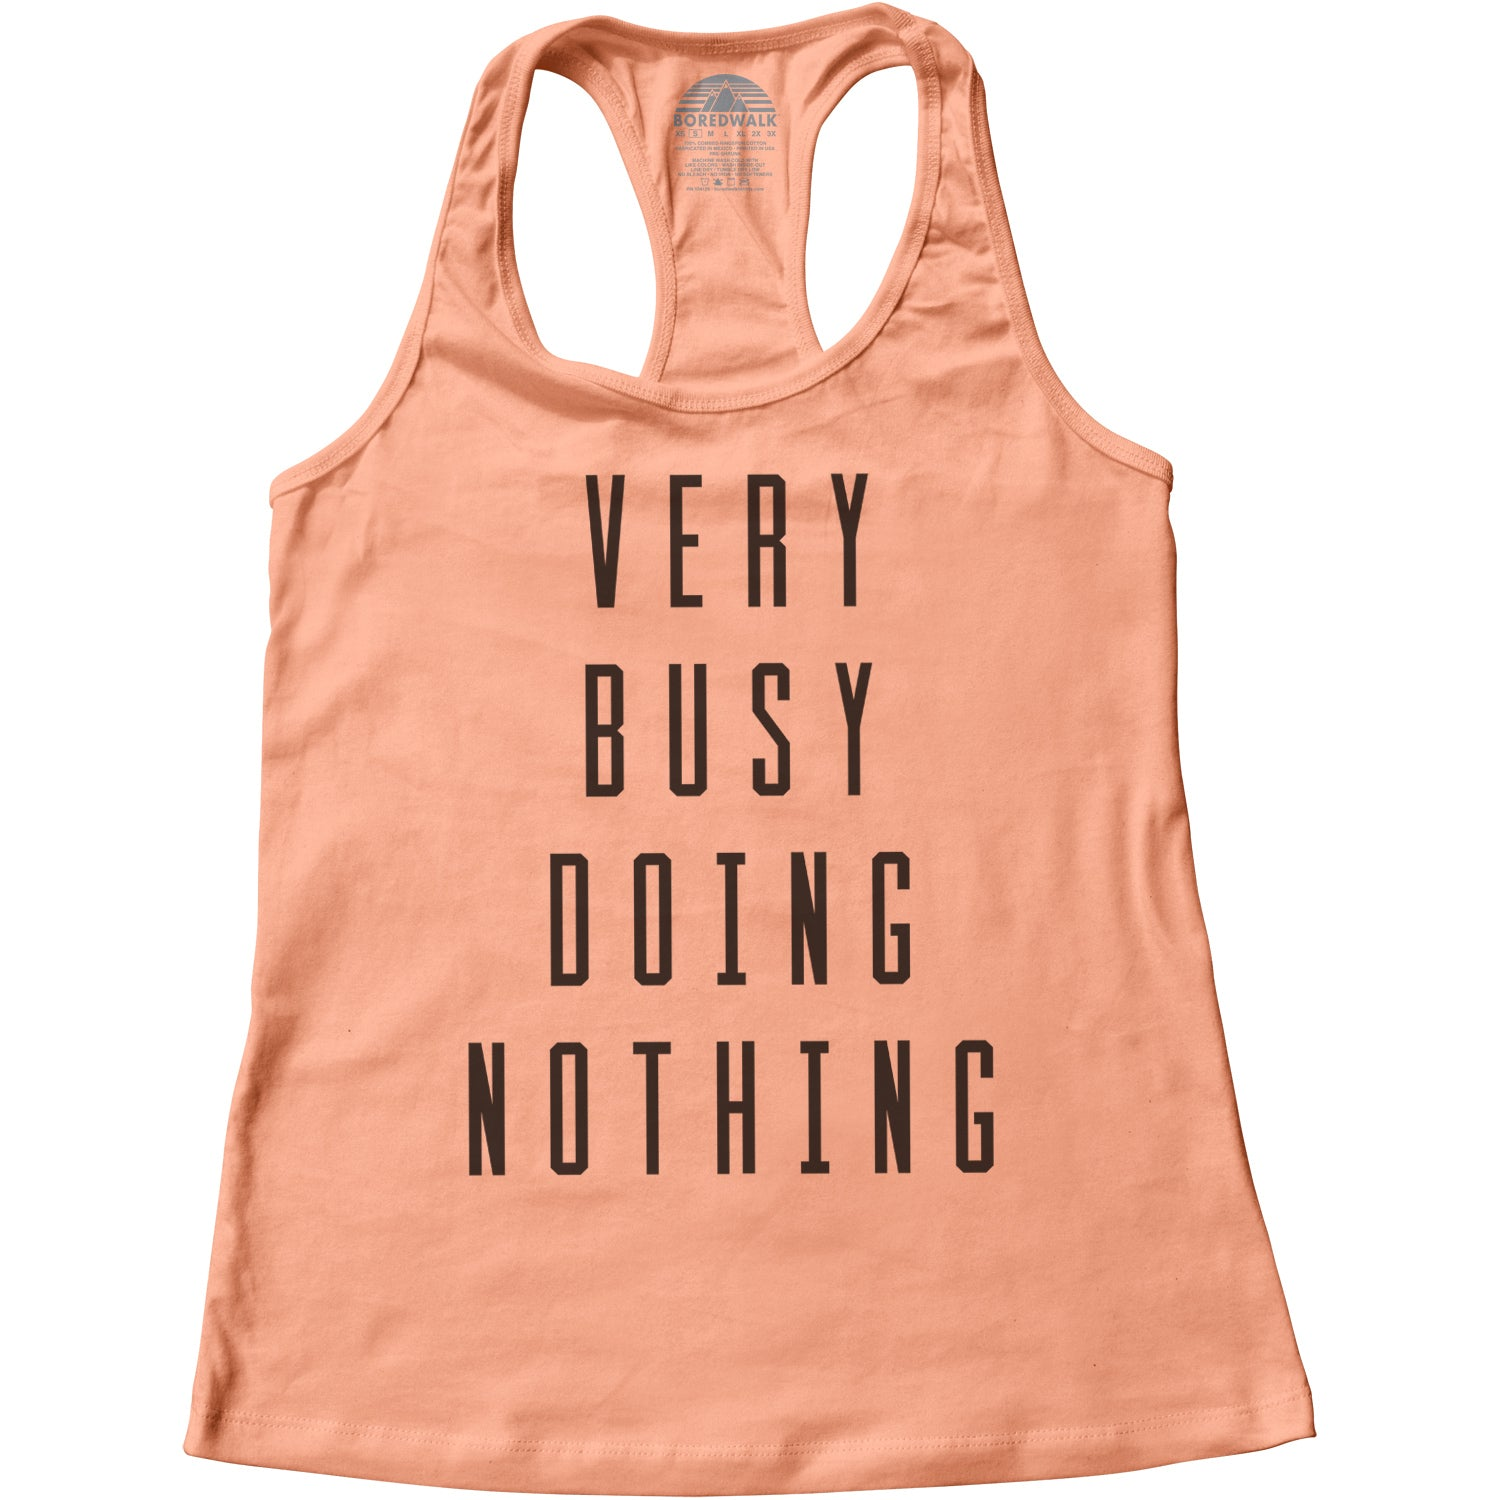 Women's Very Busy Doing Nothing Racerback Tank Top